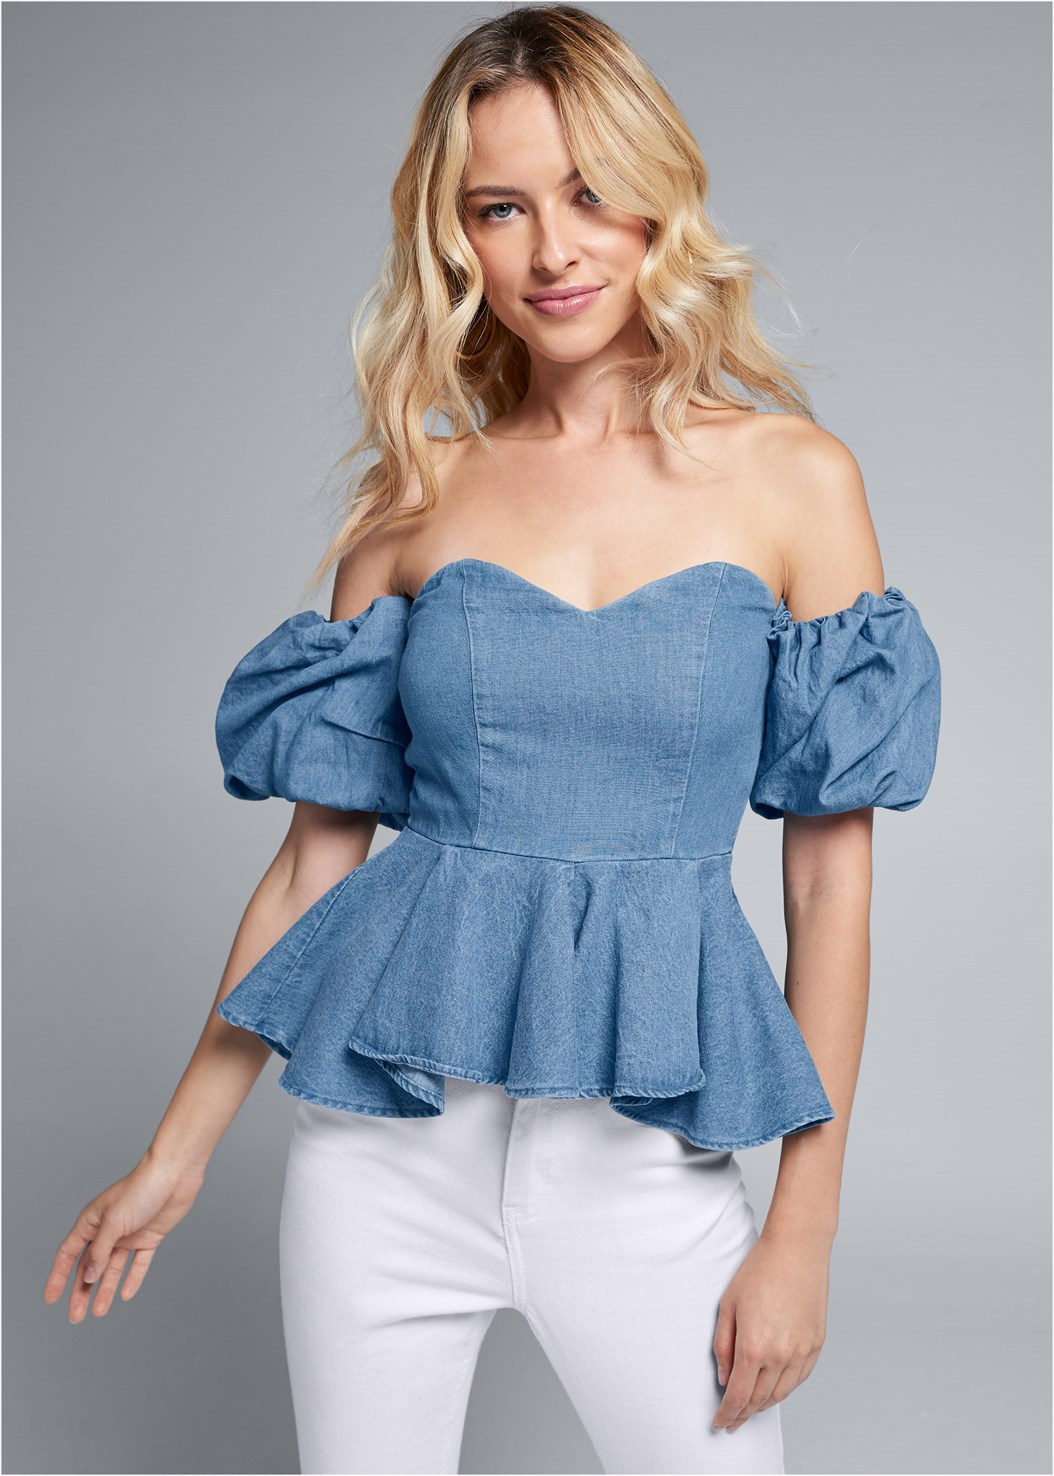 Puff Sleeve Chambray Top,Everyday You Strapless Bra,Flower Detail Heels